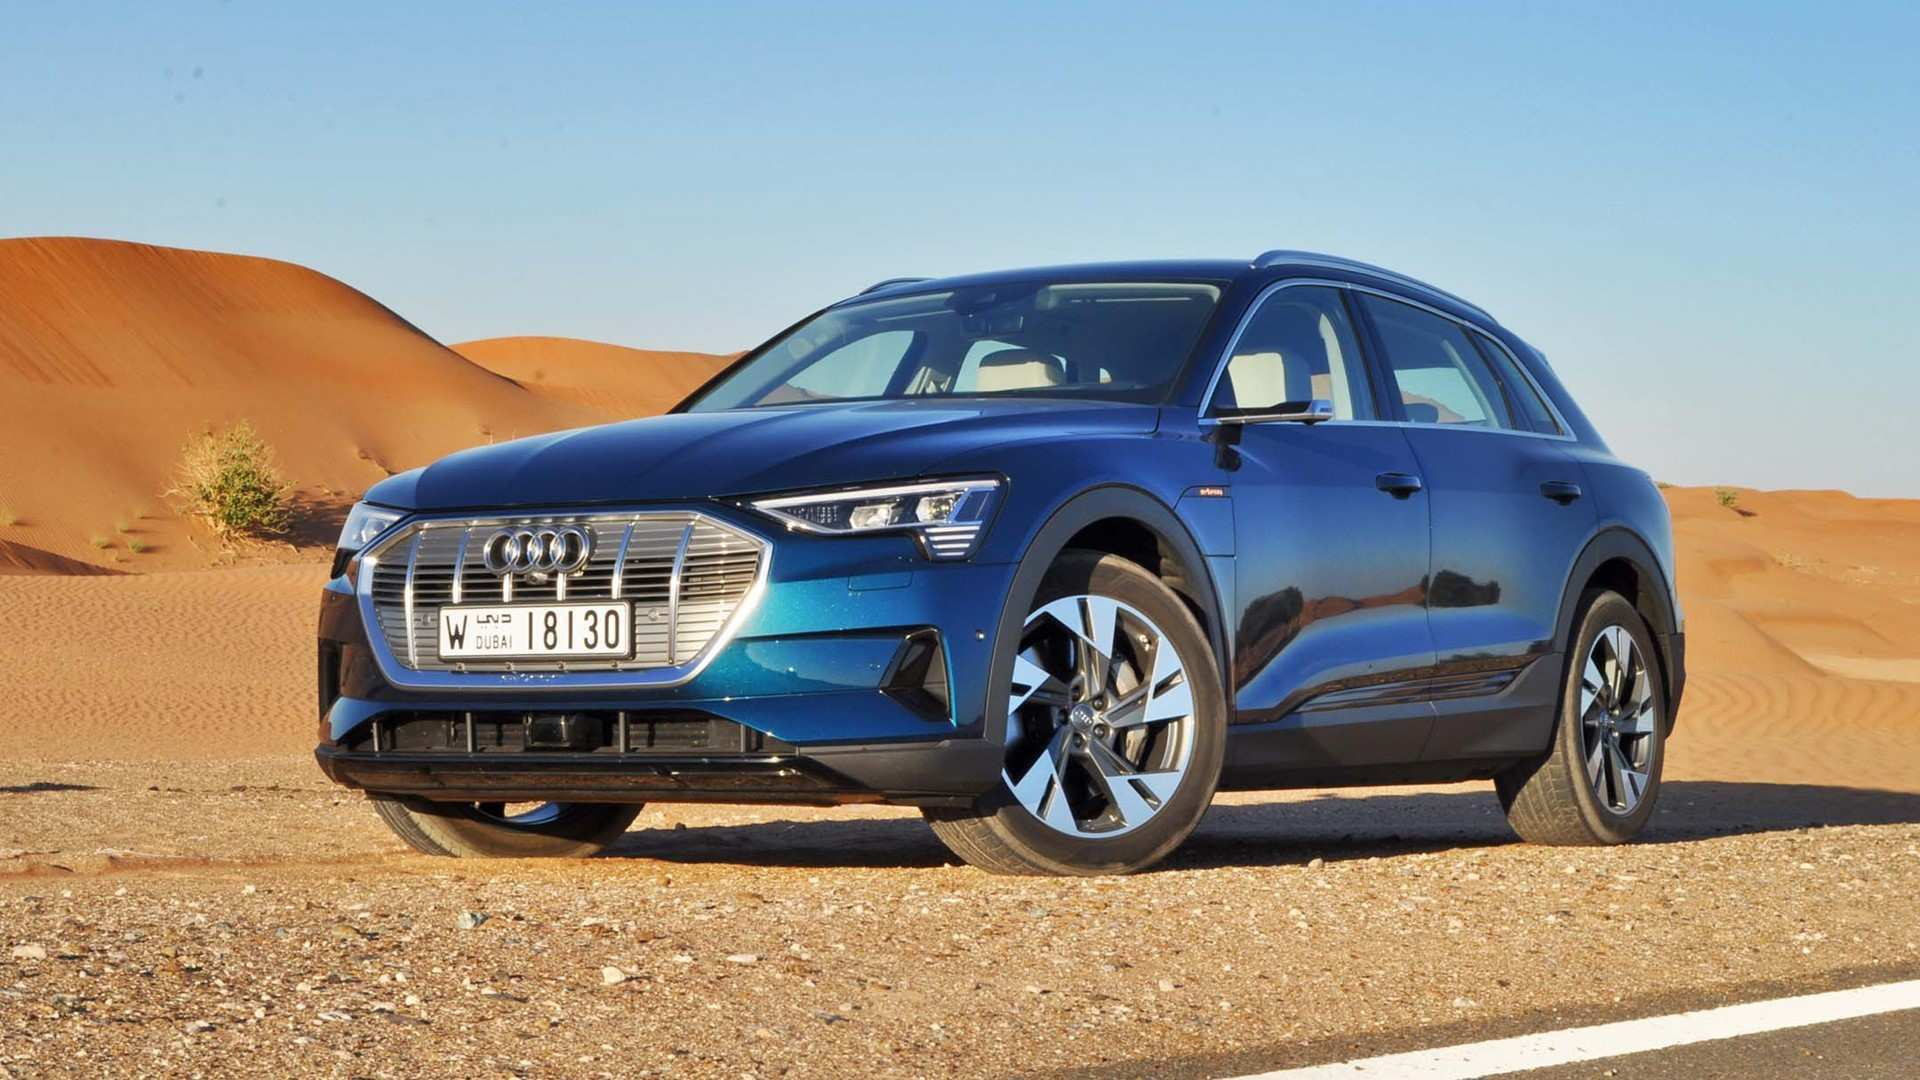 66 New Audi Hybrid Cars 2020 Pricing by Audi Hybrid Cars 2020